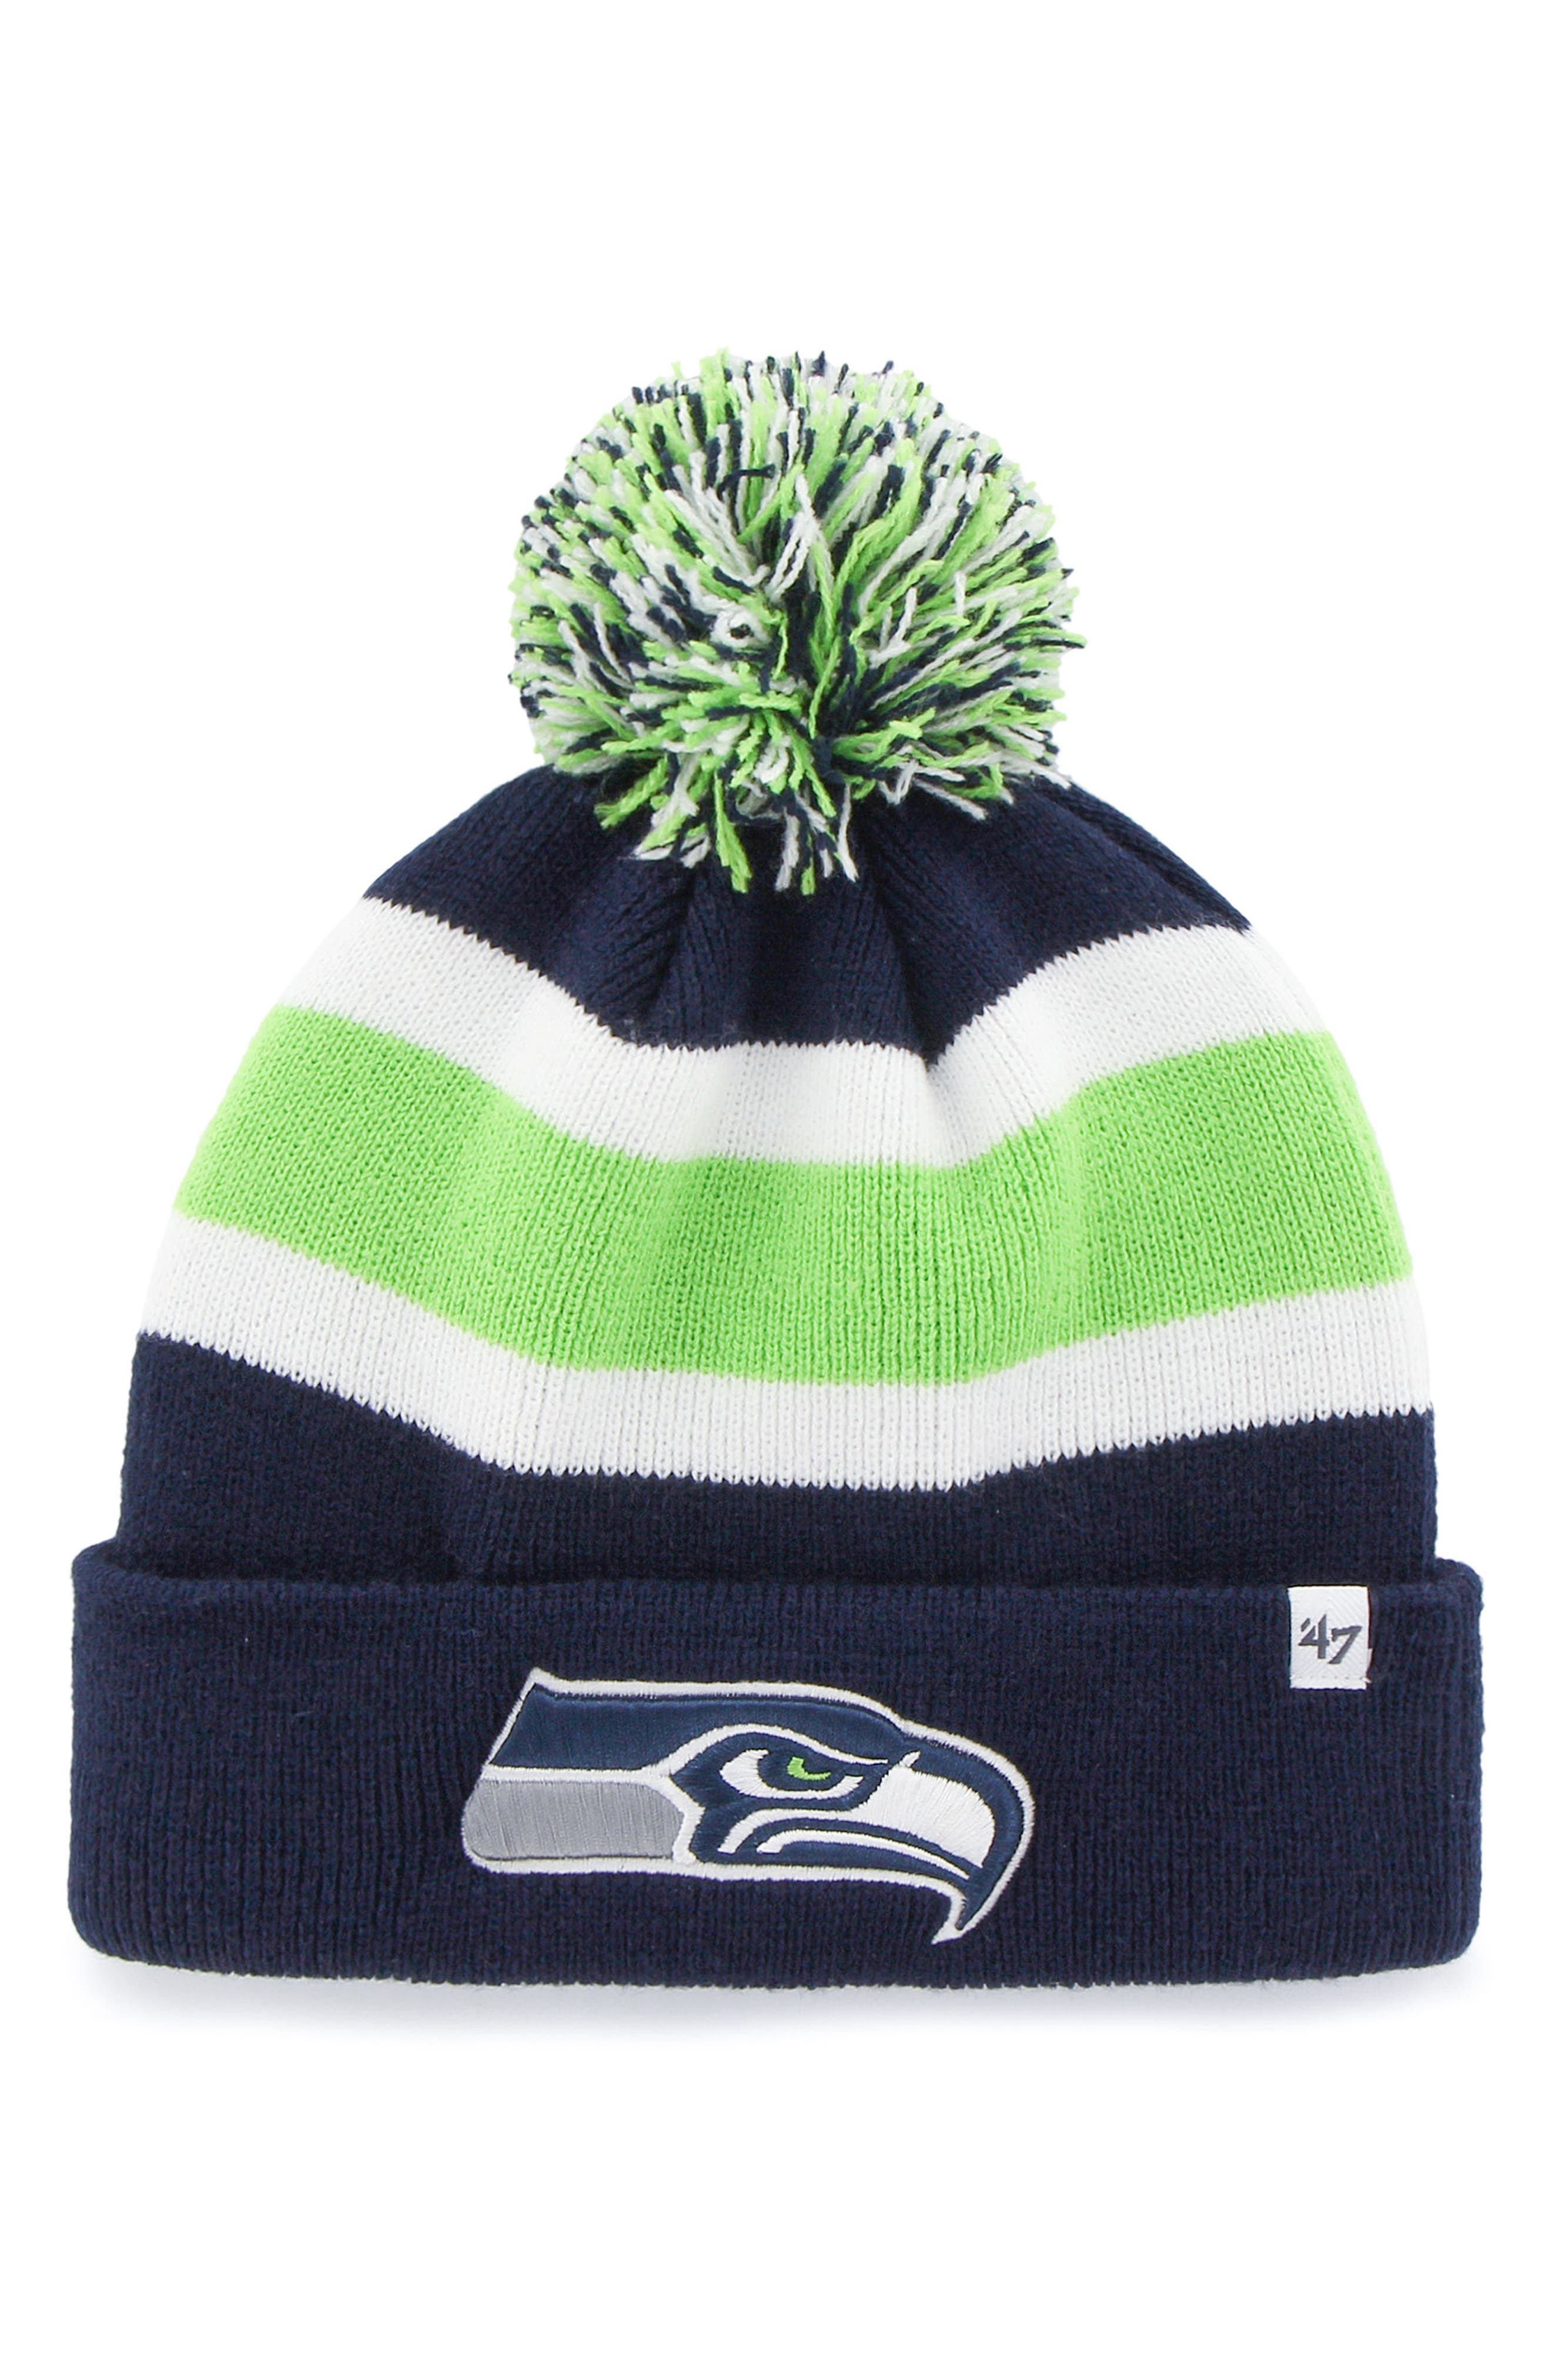 NFL Breakaway Knit Cap,                             Main thumbnail 5, color,